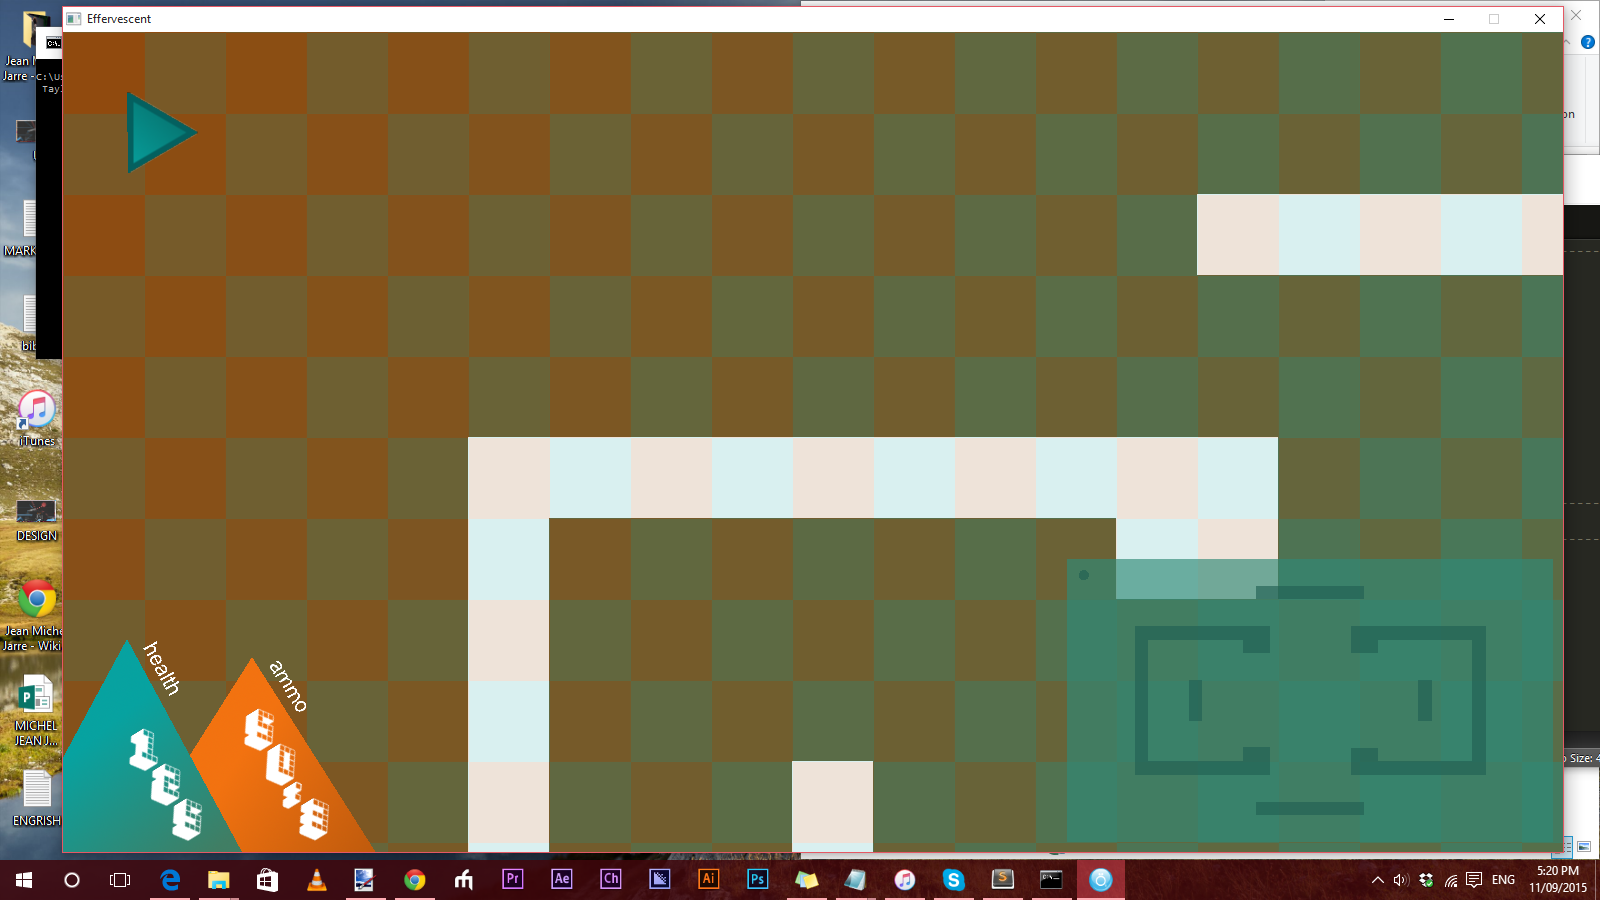 Other Effervecent Layout